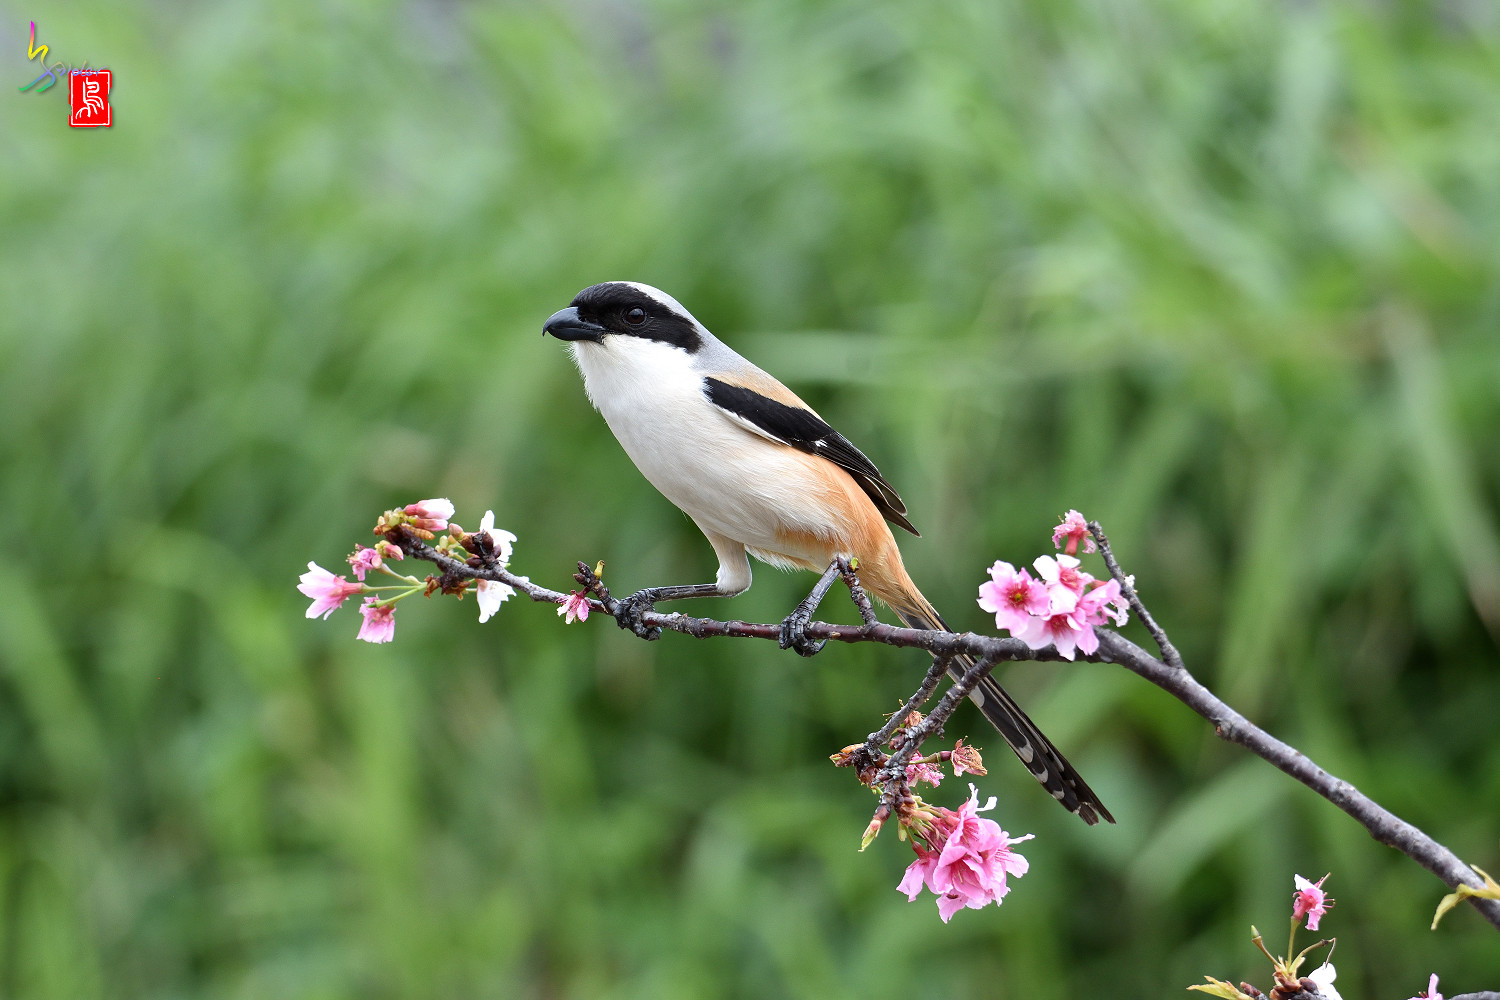 Long-tailed_Shrike_5436